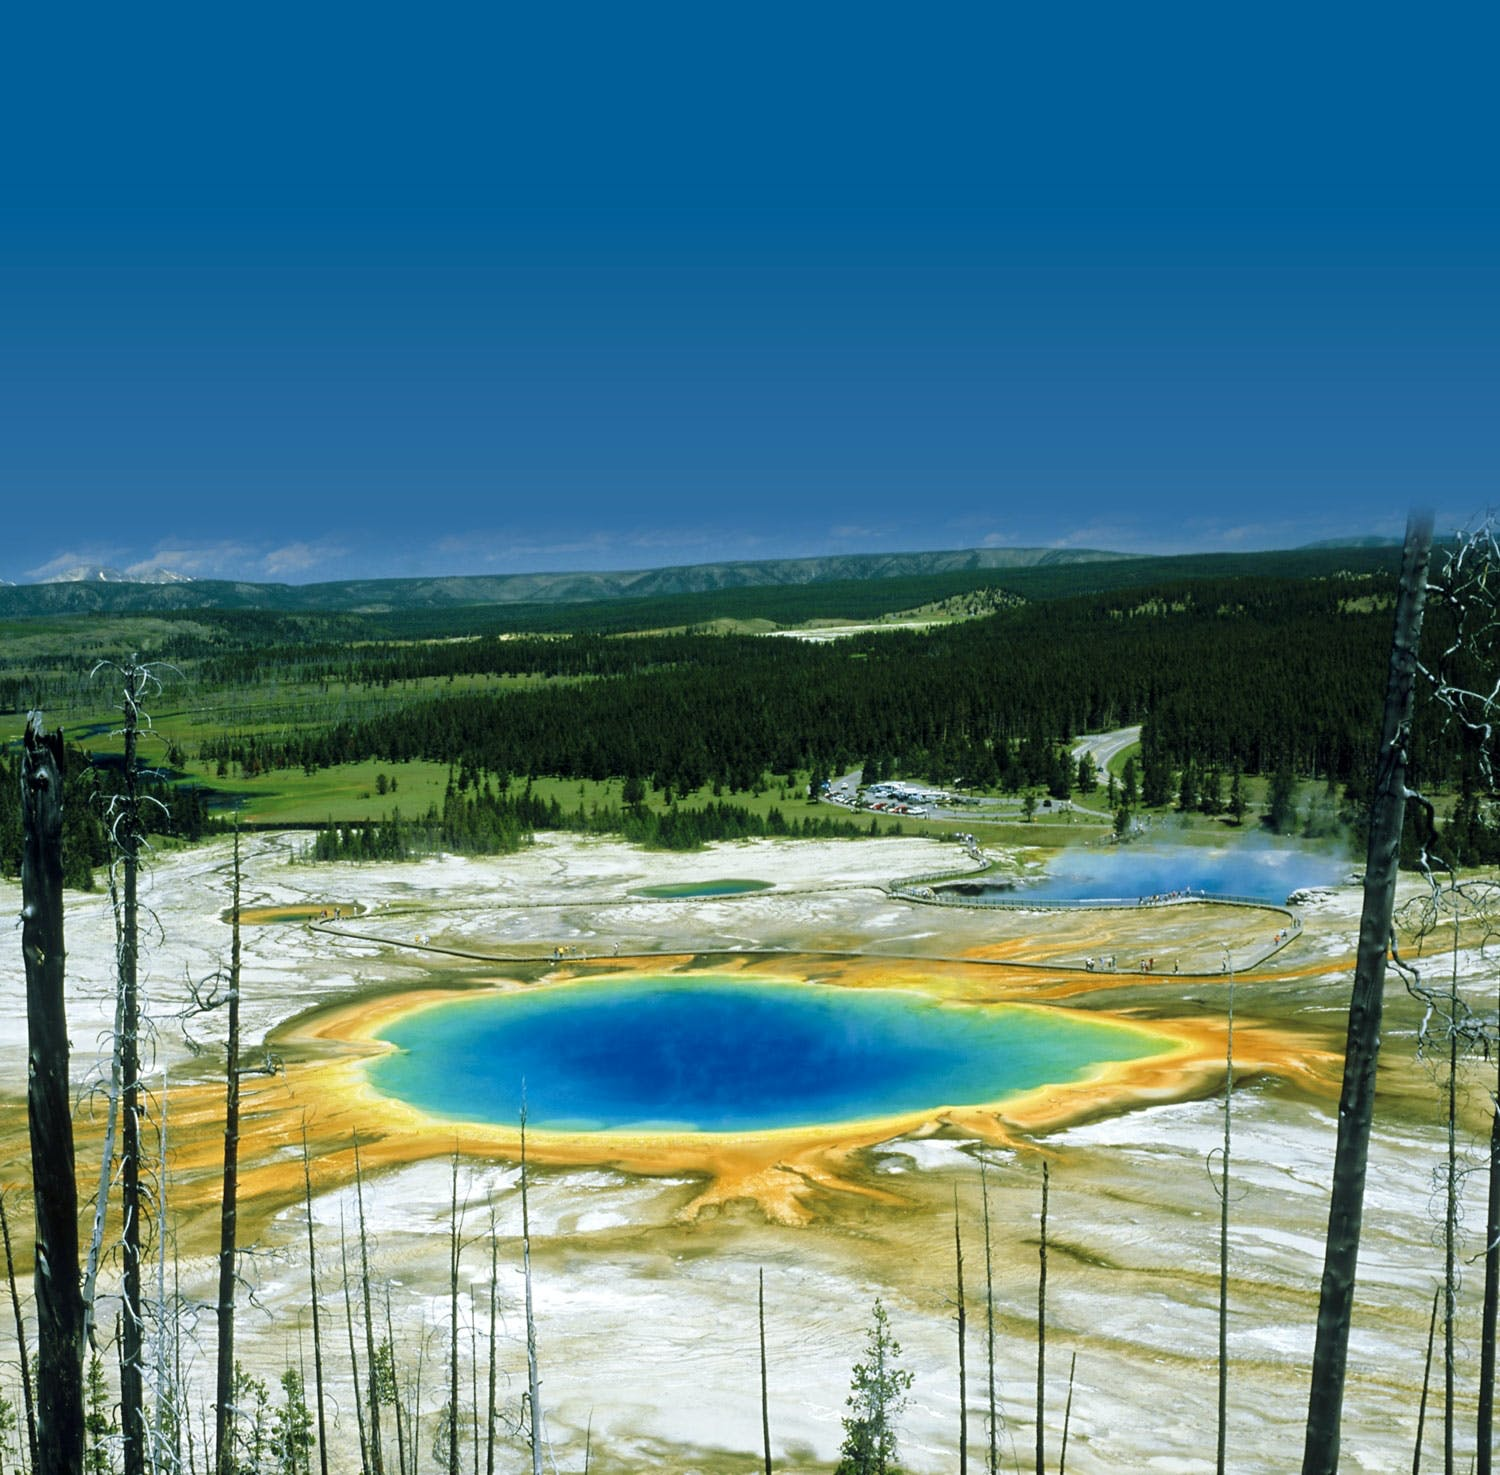 Volcano, Yellowstone National Park